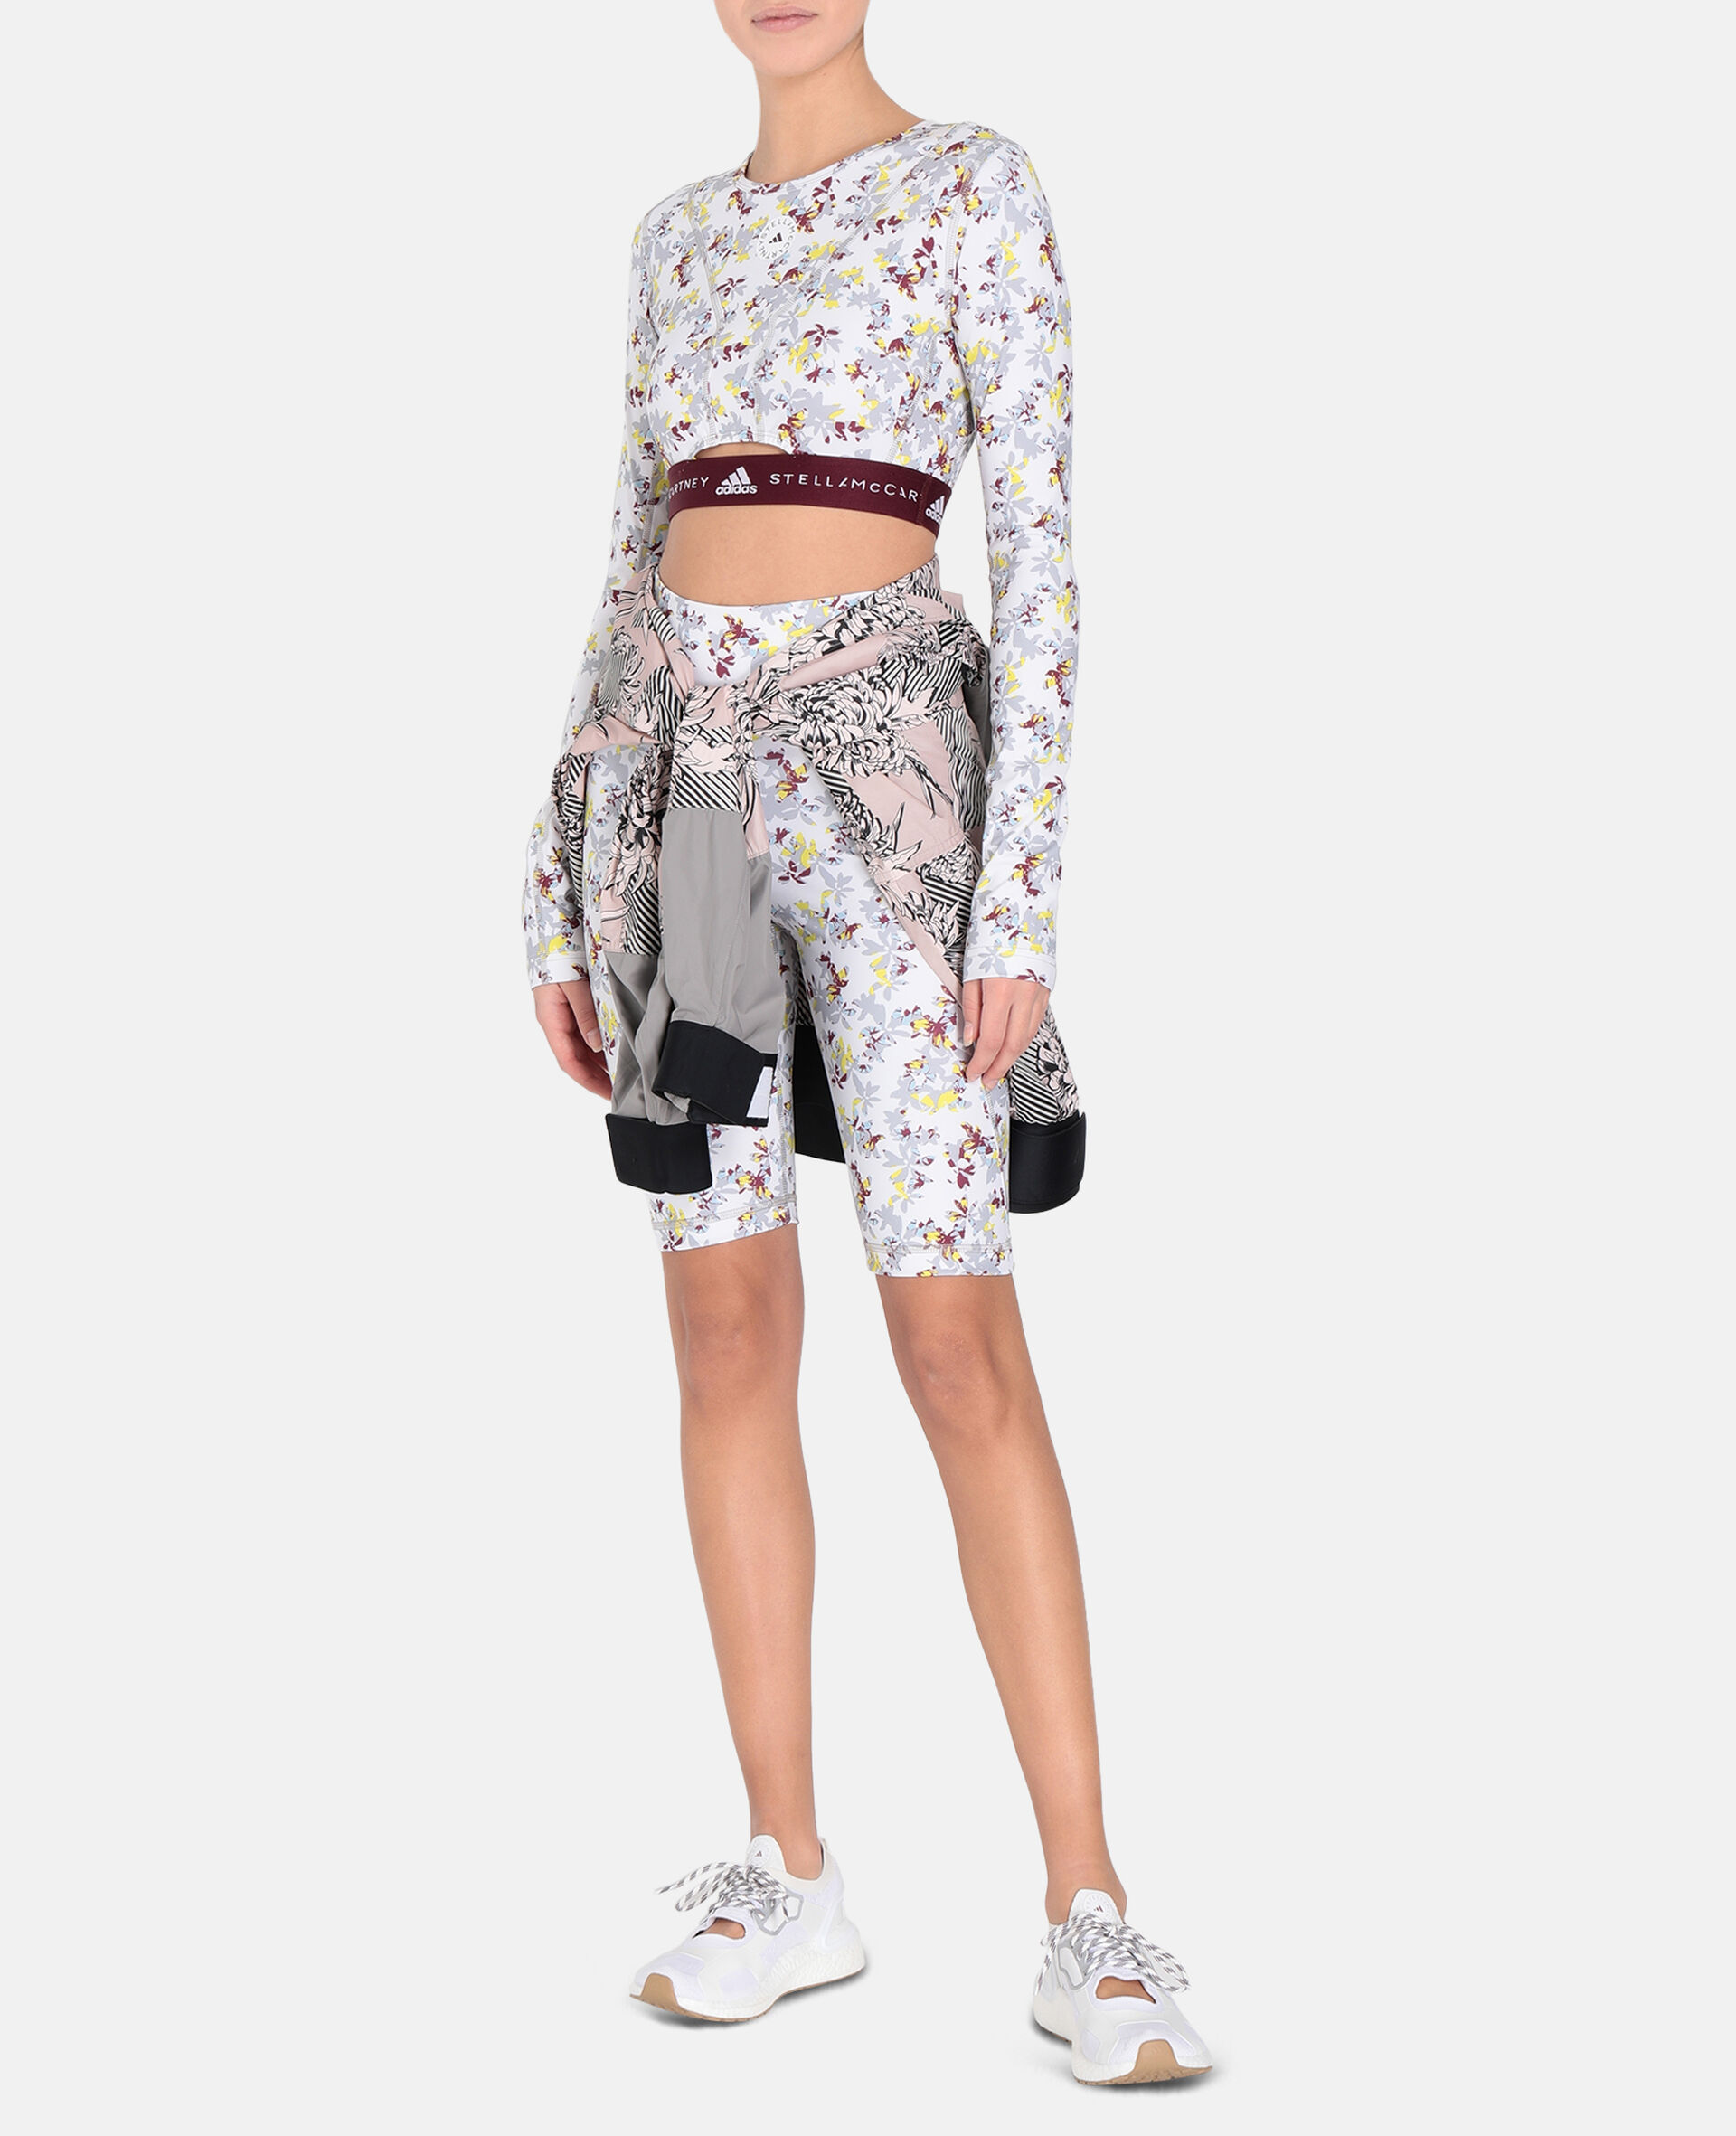 Future Playground Long-Sleeved Crop Top -White-large image number 1